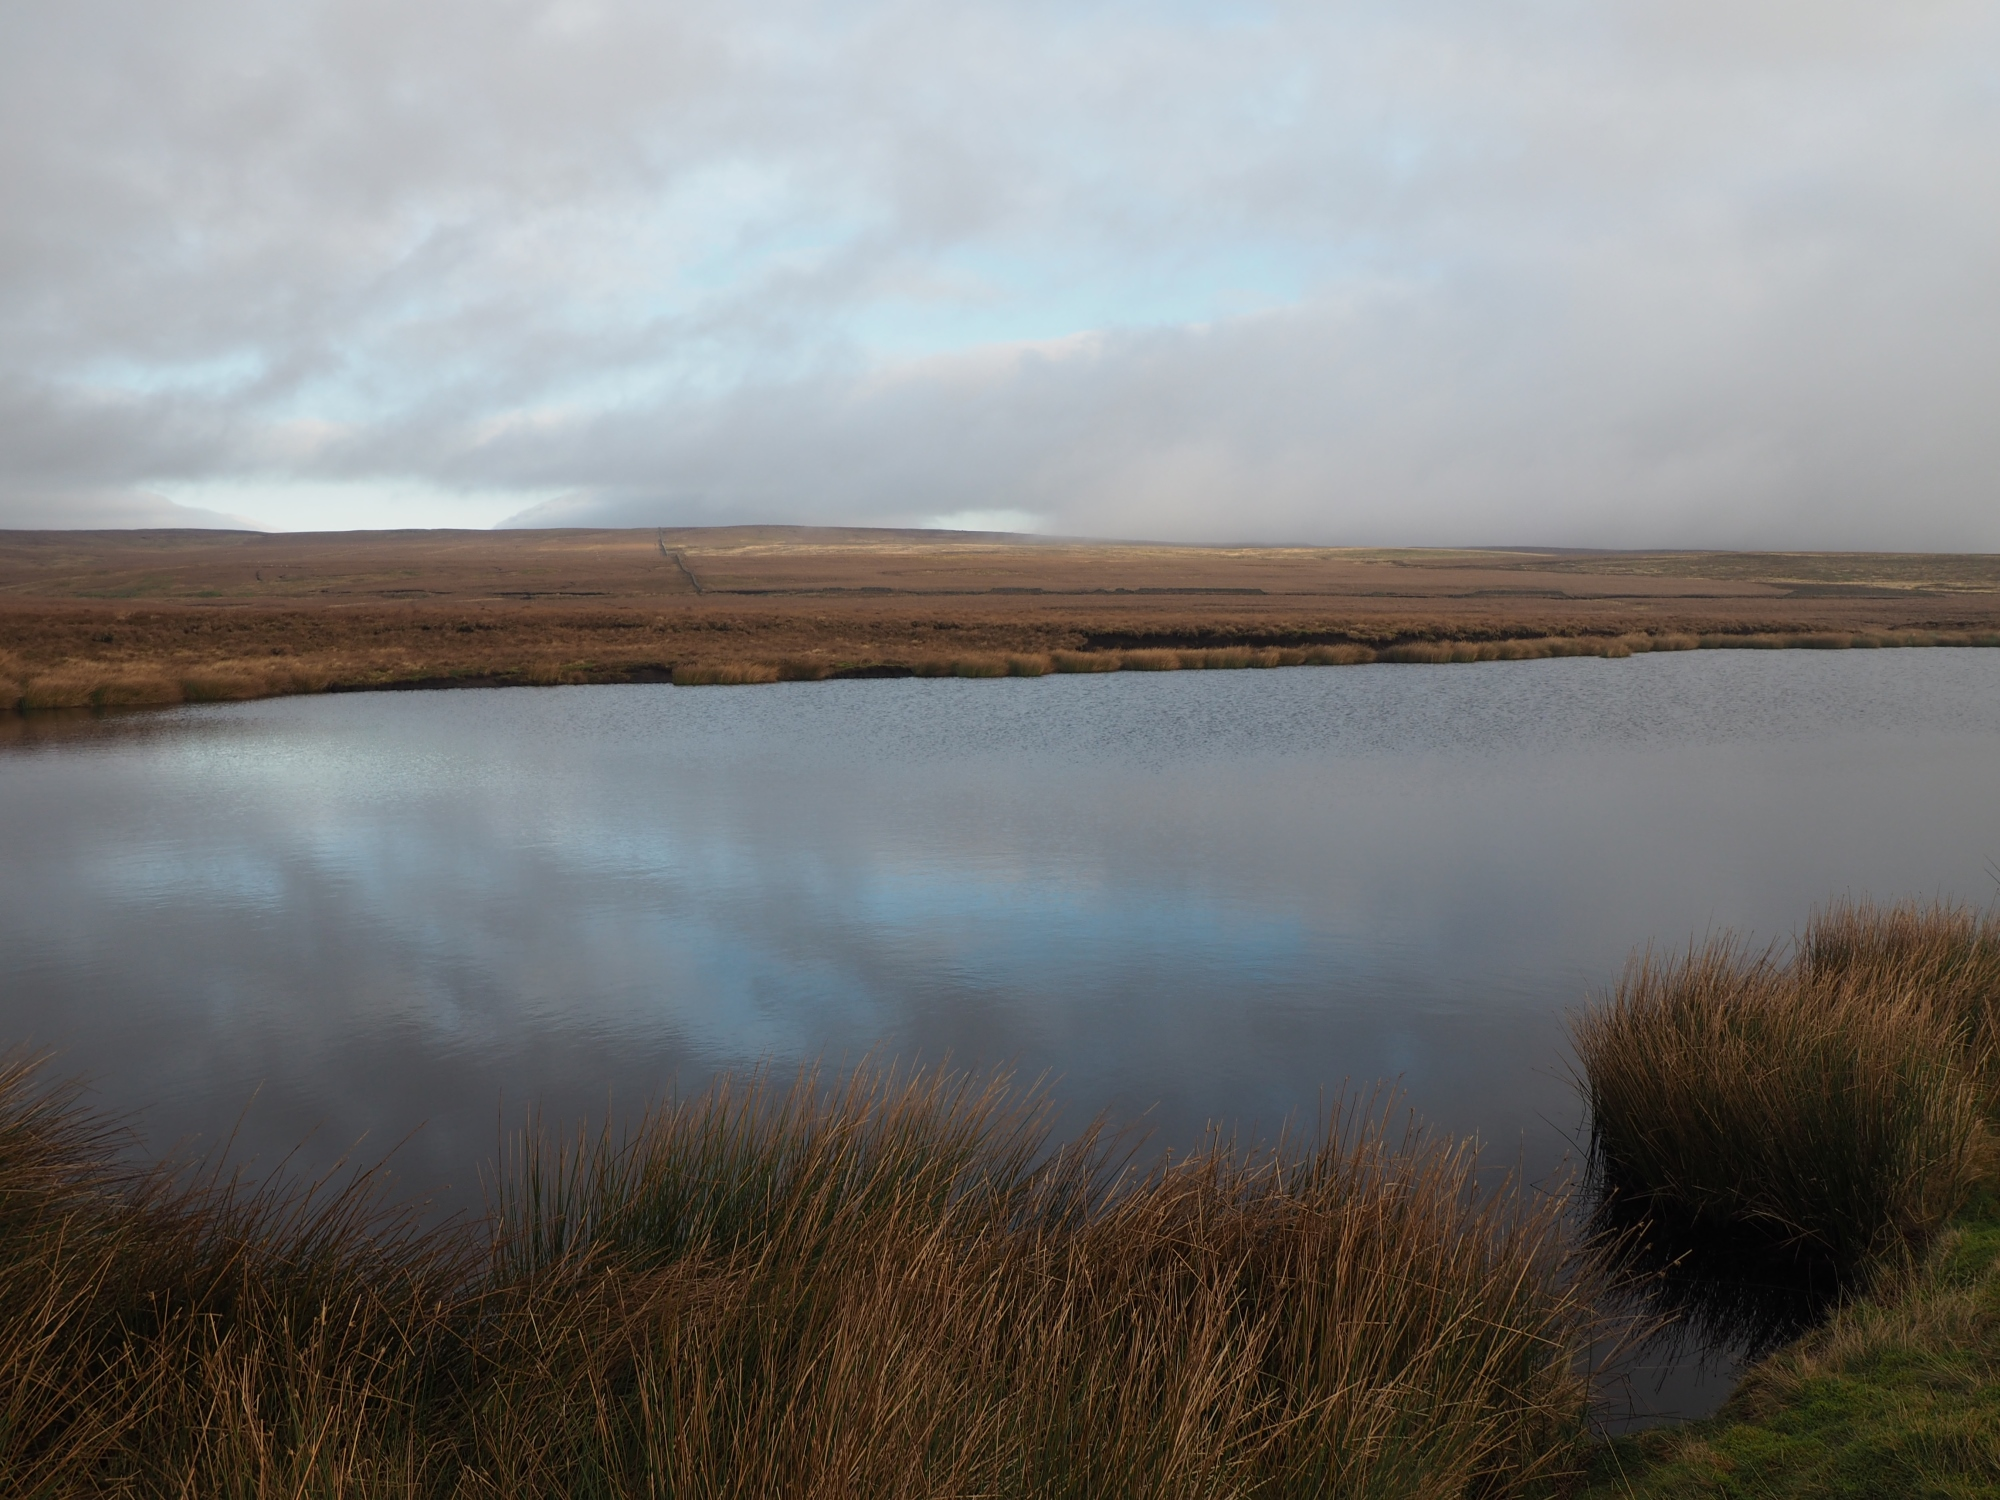 One of the Grassington Moor reservoirs